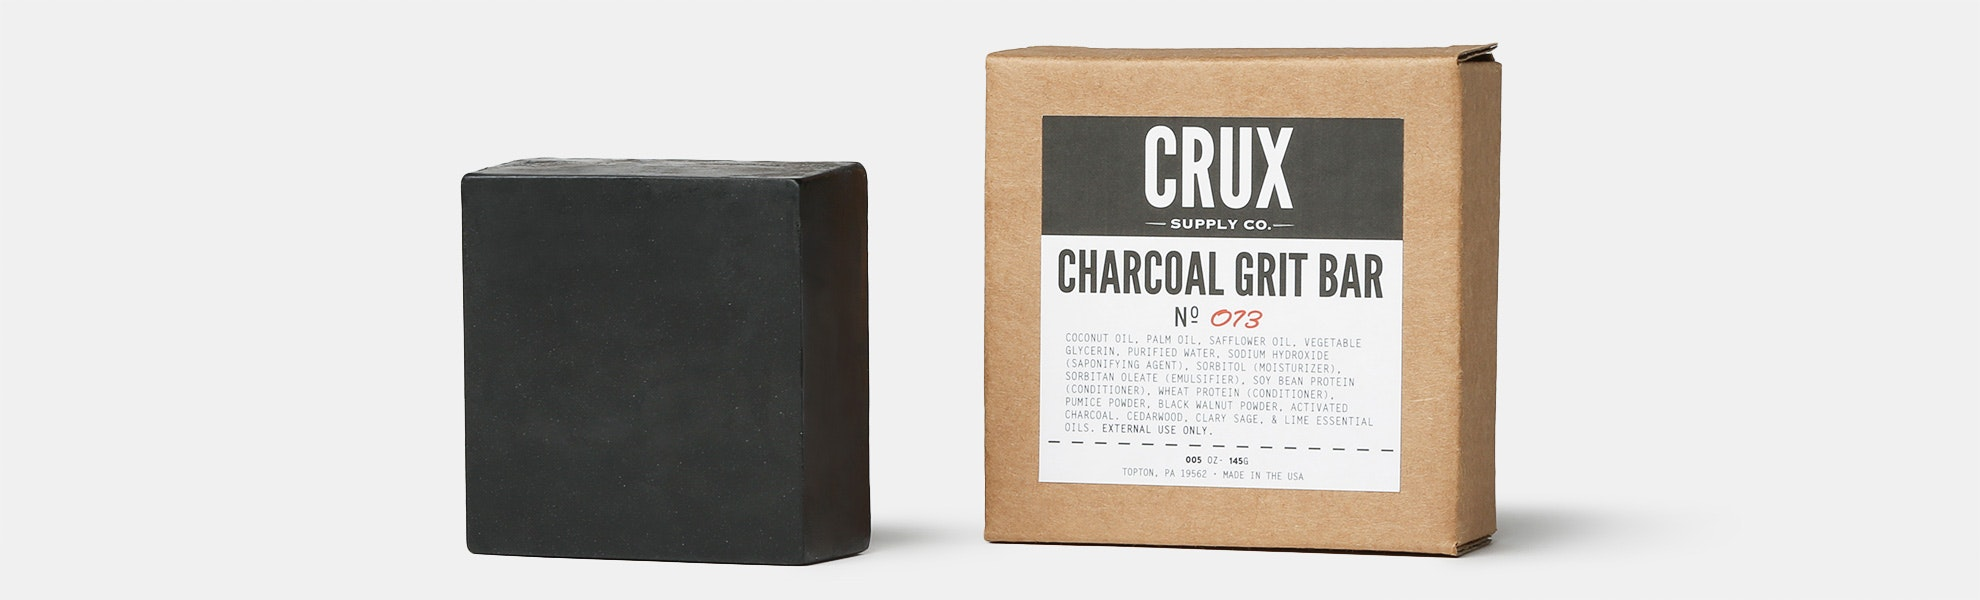 Crux Supply Co. Charcoal Grit Bar (2-Pack)